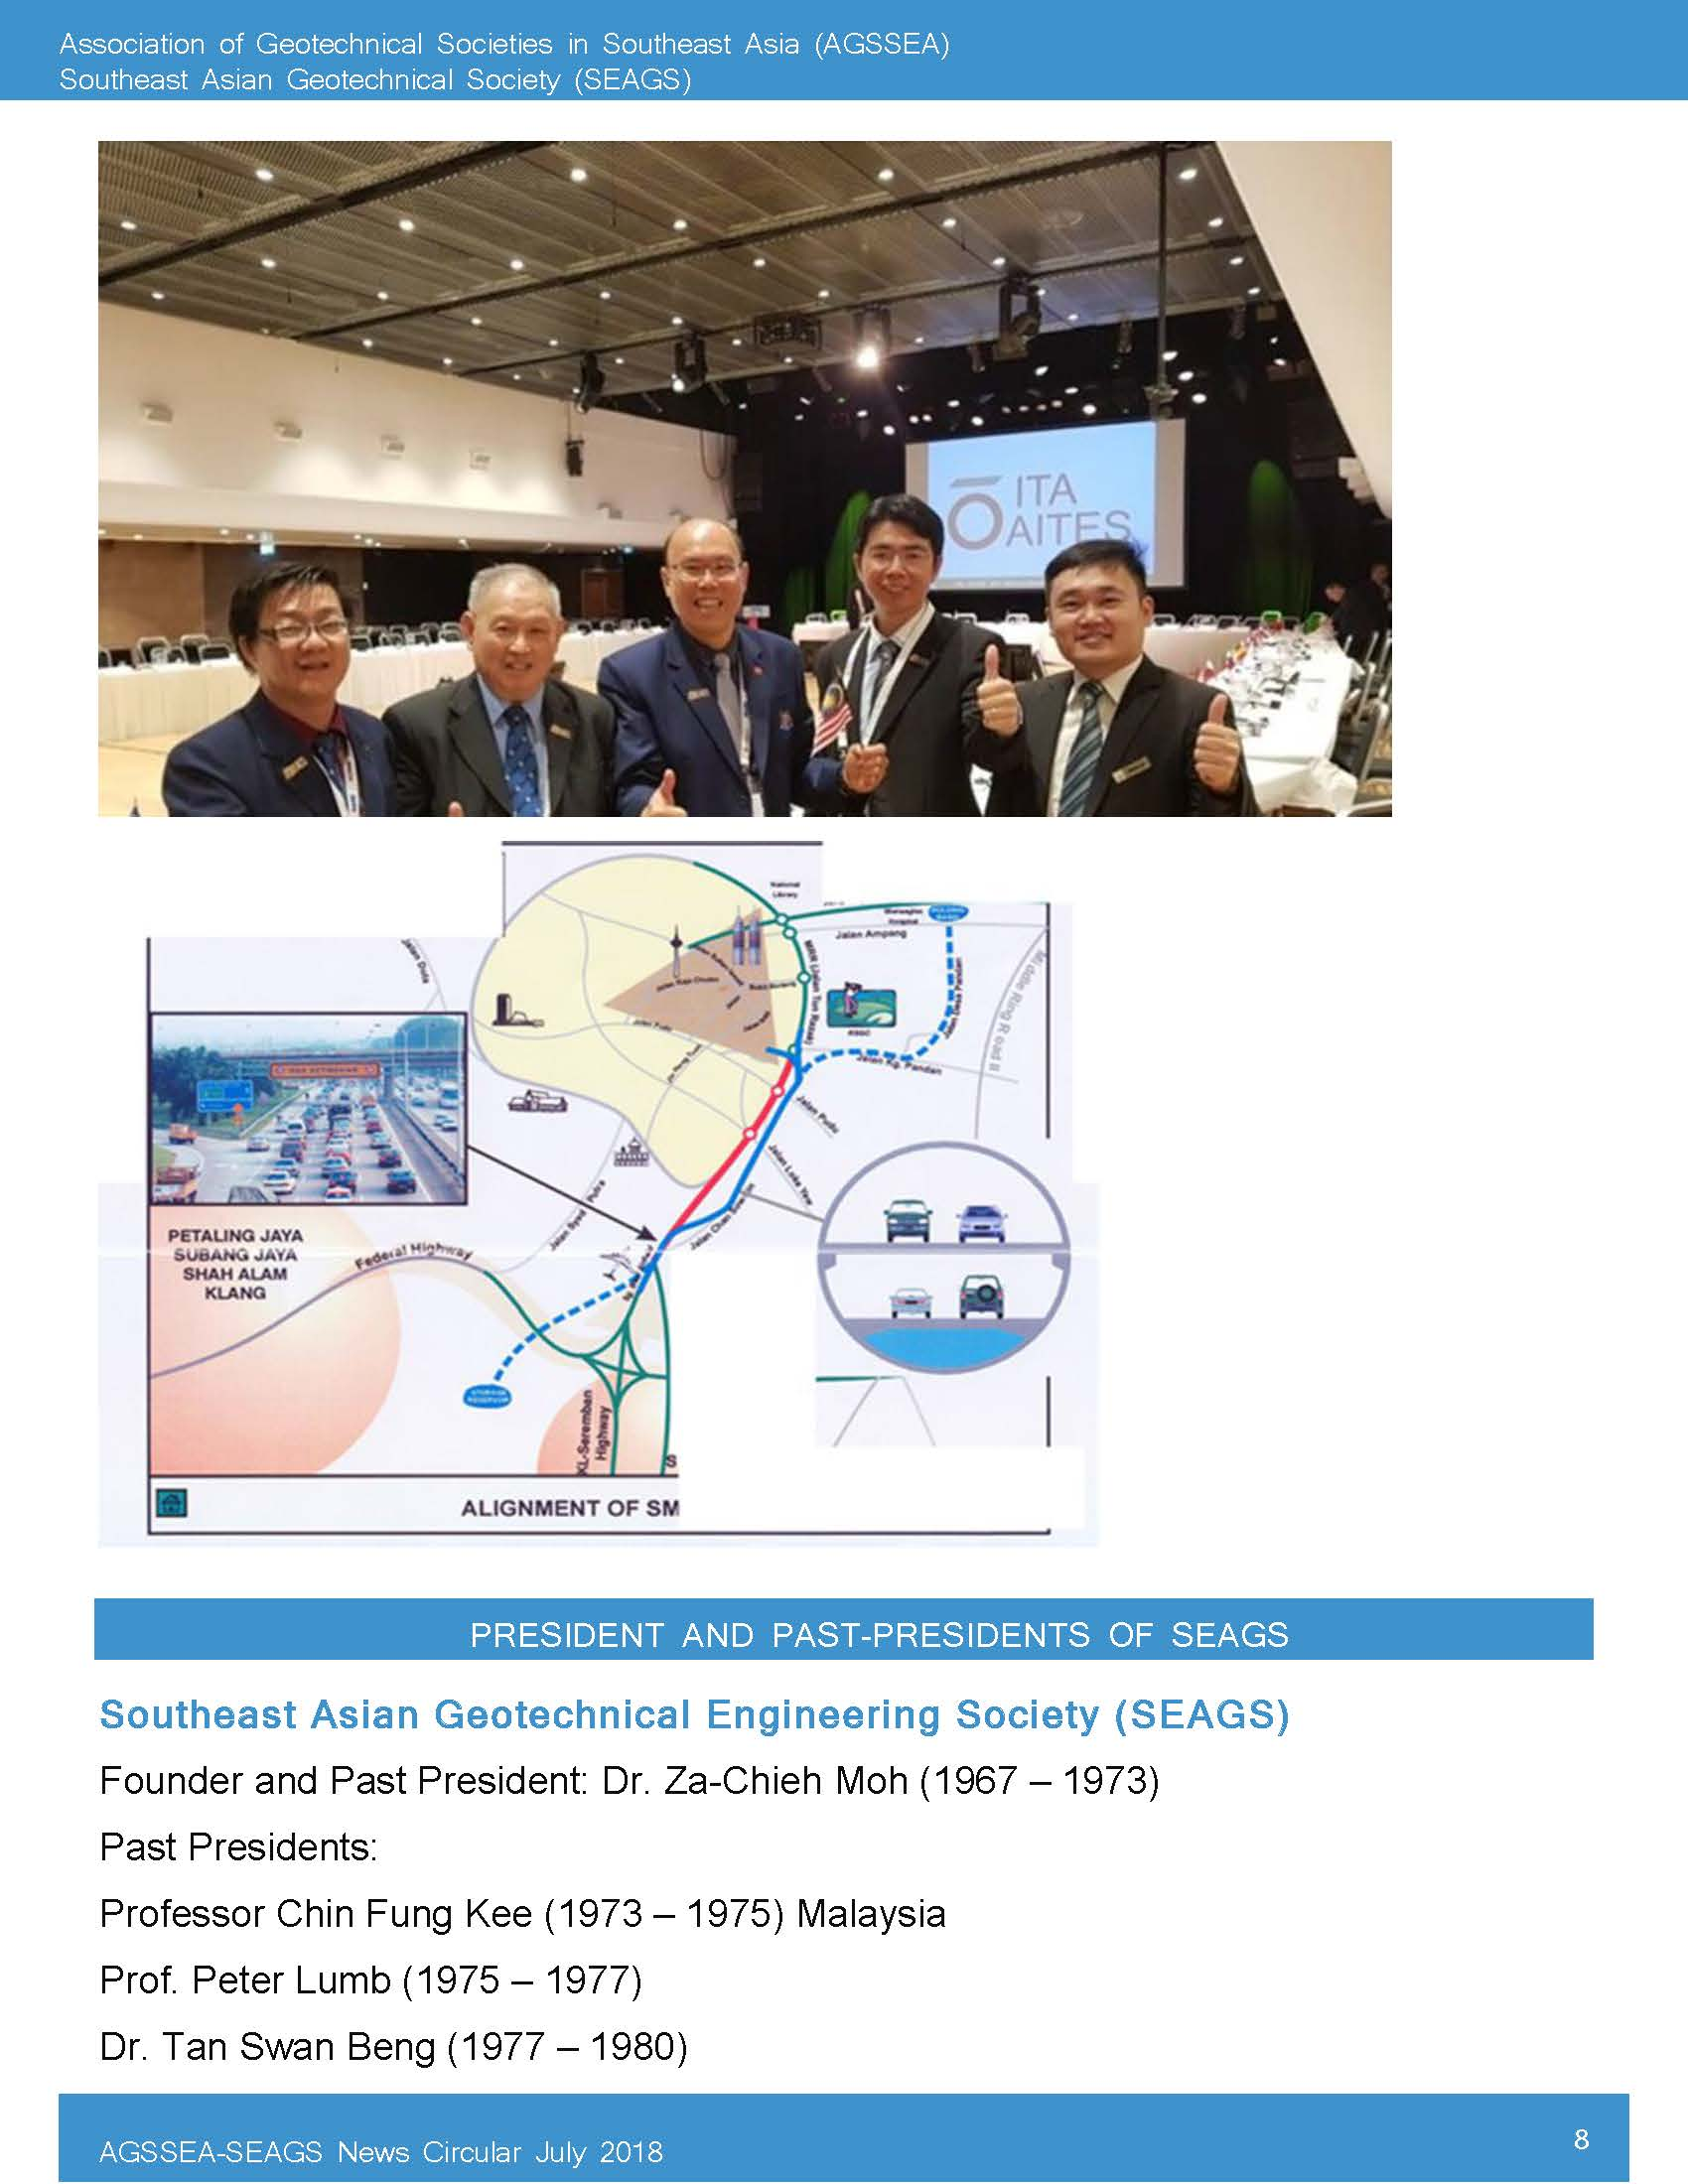 http://seags.ait.asia/wordpress/wp-content/uploads/Advances-in-Geotechnical-Engineering-in-Malaysia-July-2018-revtao_3_Page_08.jpg